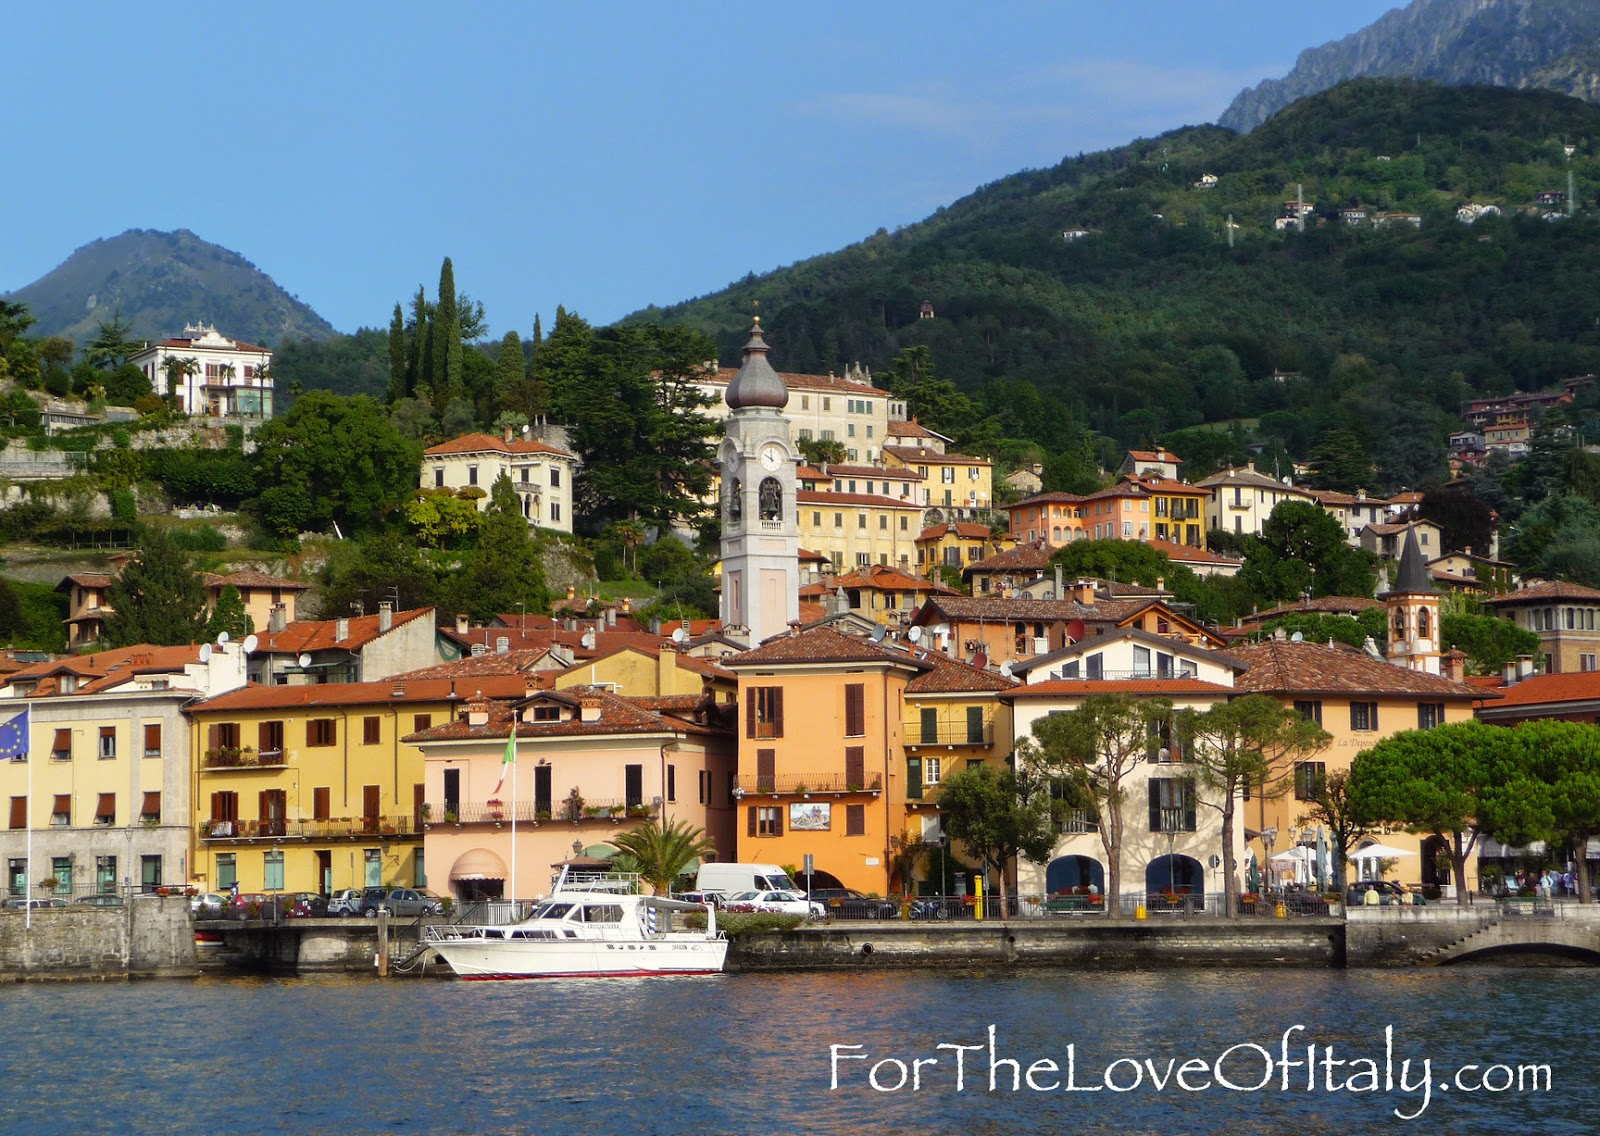 A picture of Menaggio, Italy (Lombardy) Lake Como, Italy © 2014 For The Love Of Italy